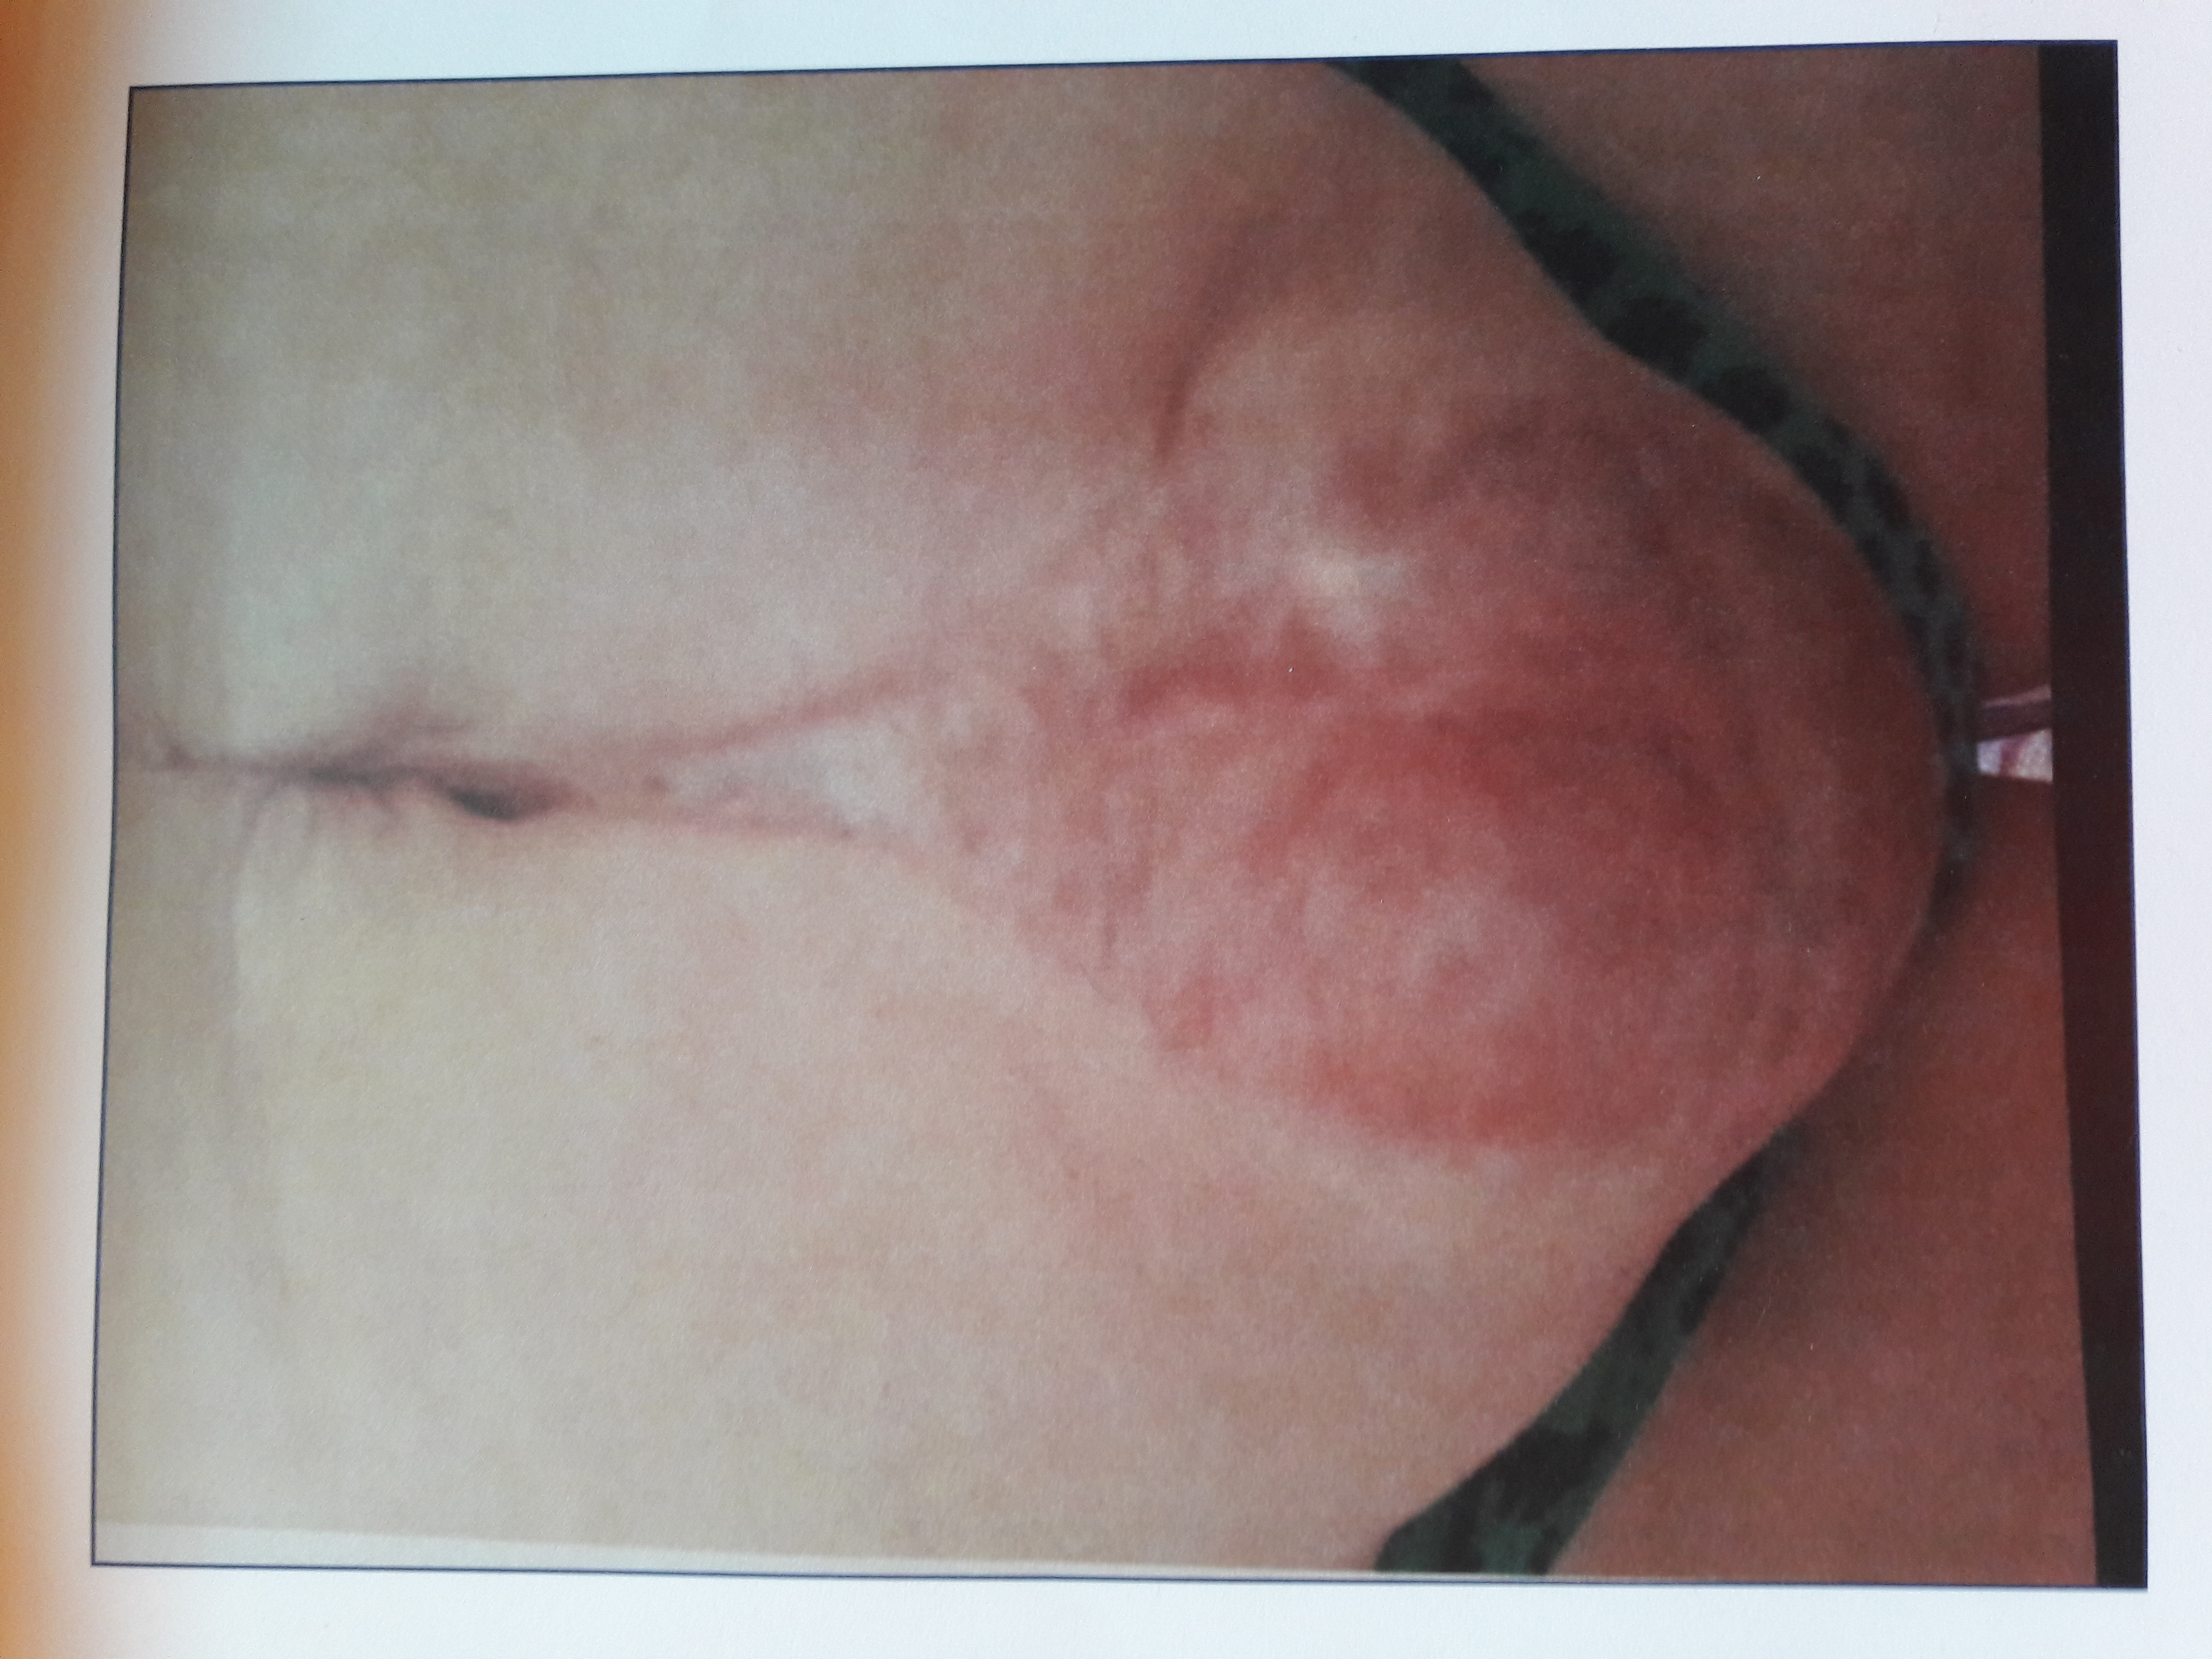 Giant hole (hernia) in abdomen causing disfigurement and disablement.